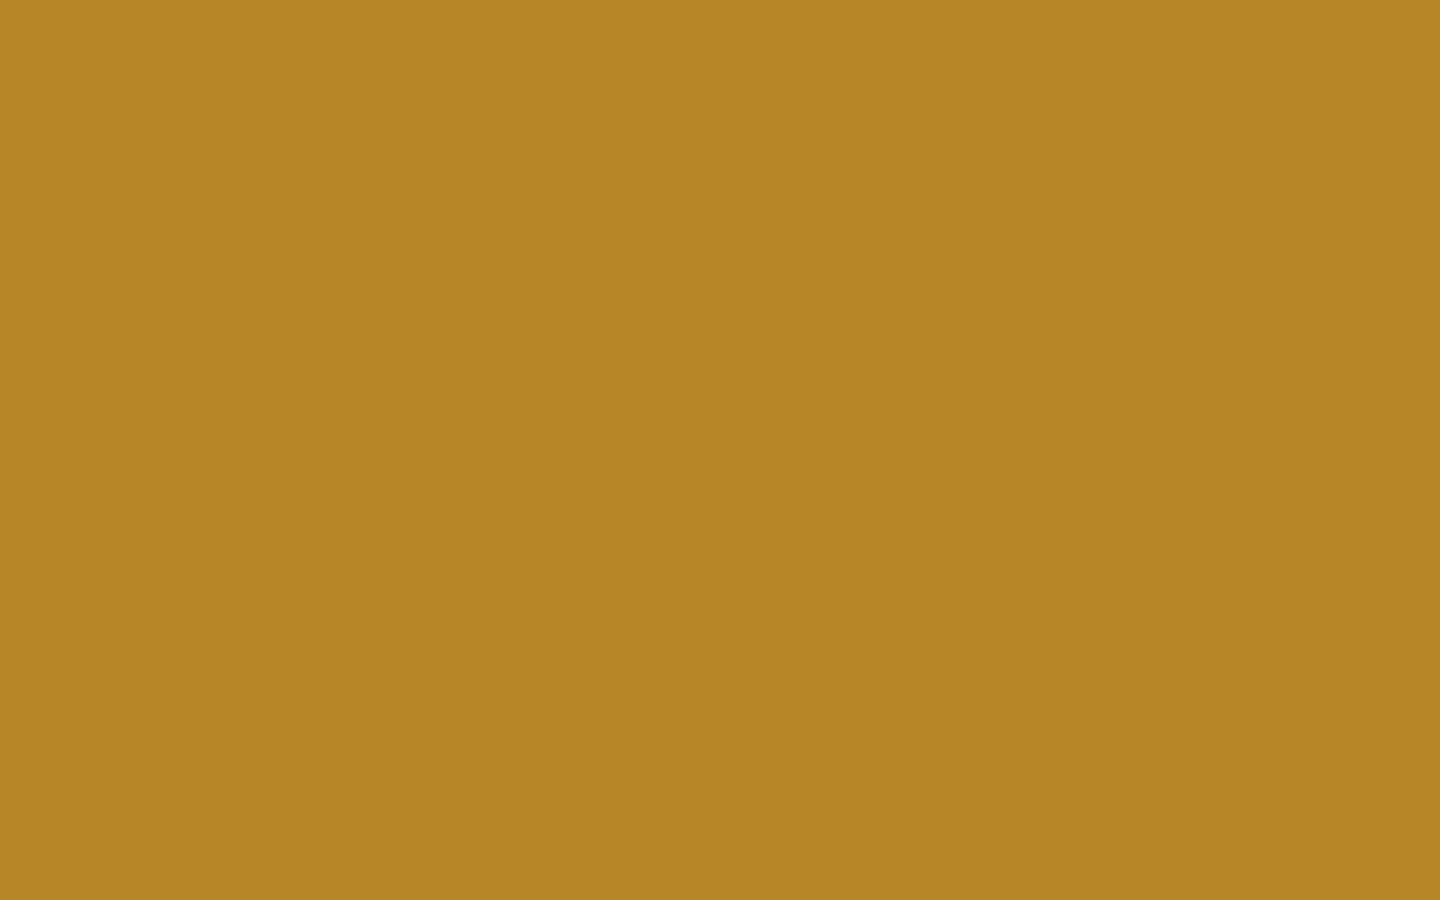 1440x900 University Of California Gold Solid Color Background